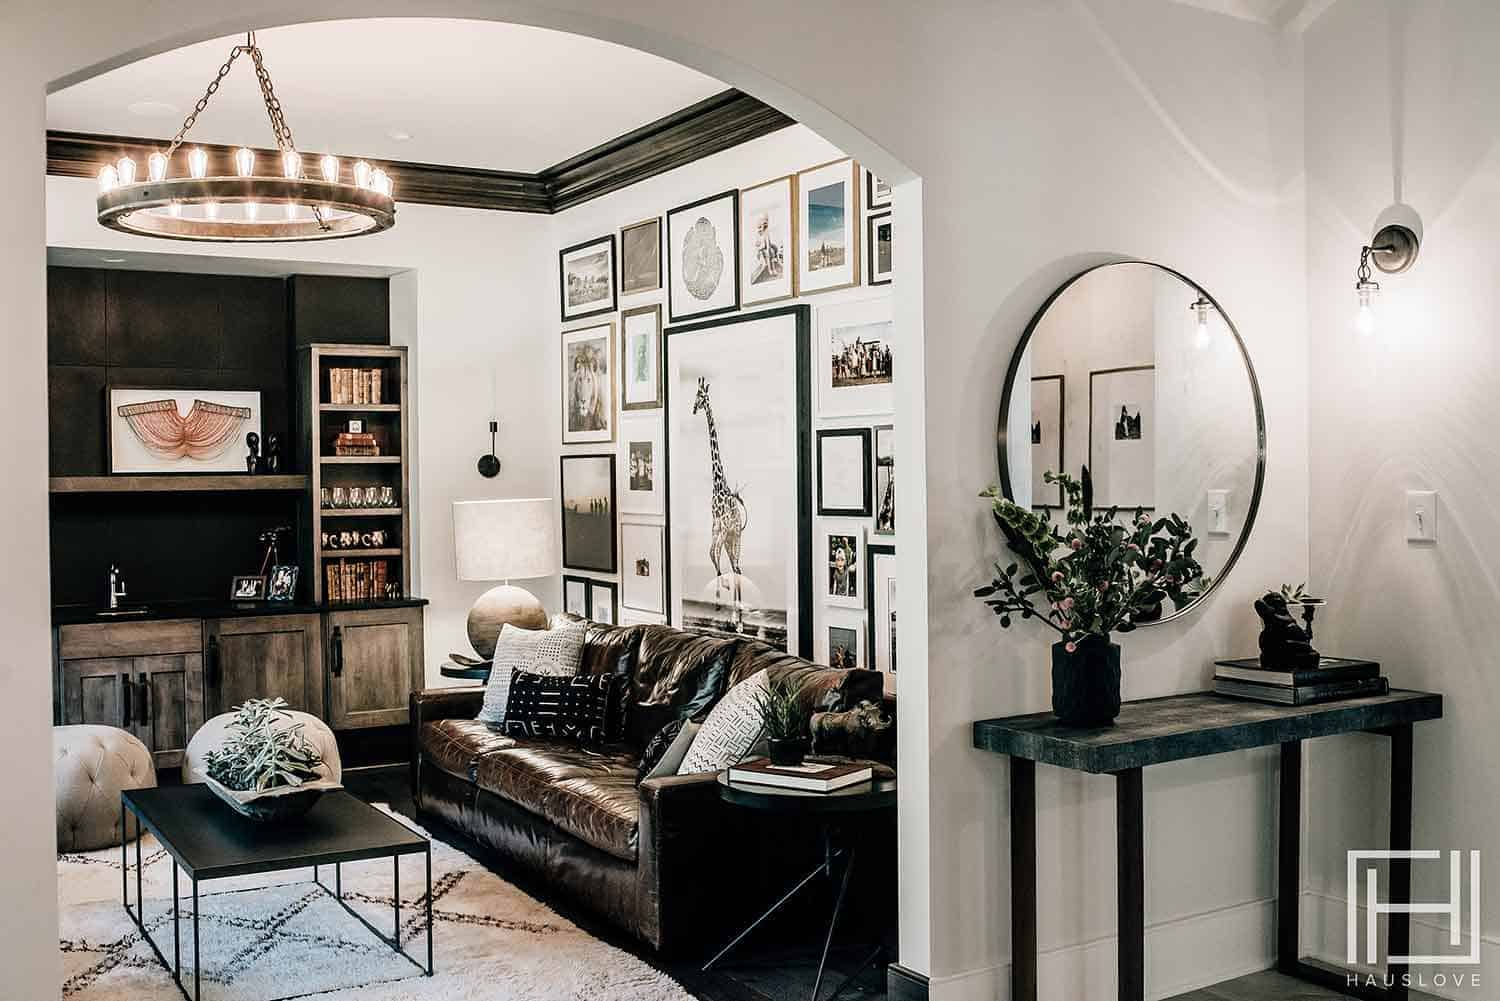 handsome room with gallery